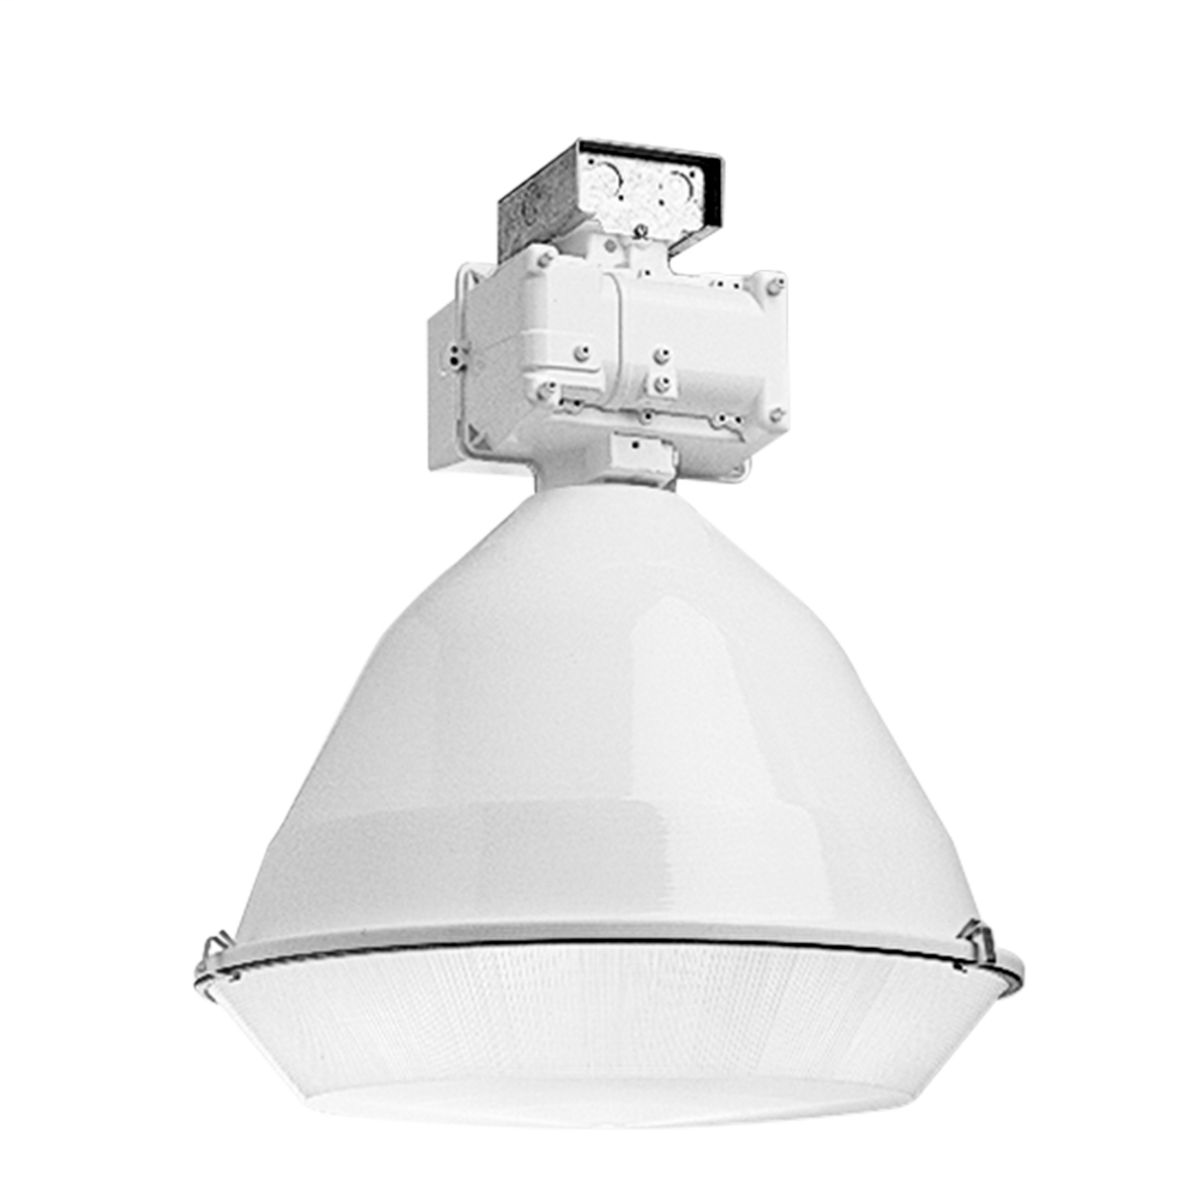 Hubbell Lighting Industrial,BL-LB1,Optic lowbay 23IN Acrylic ENC reflector